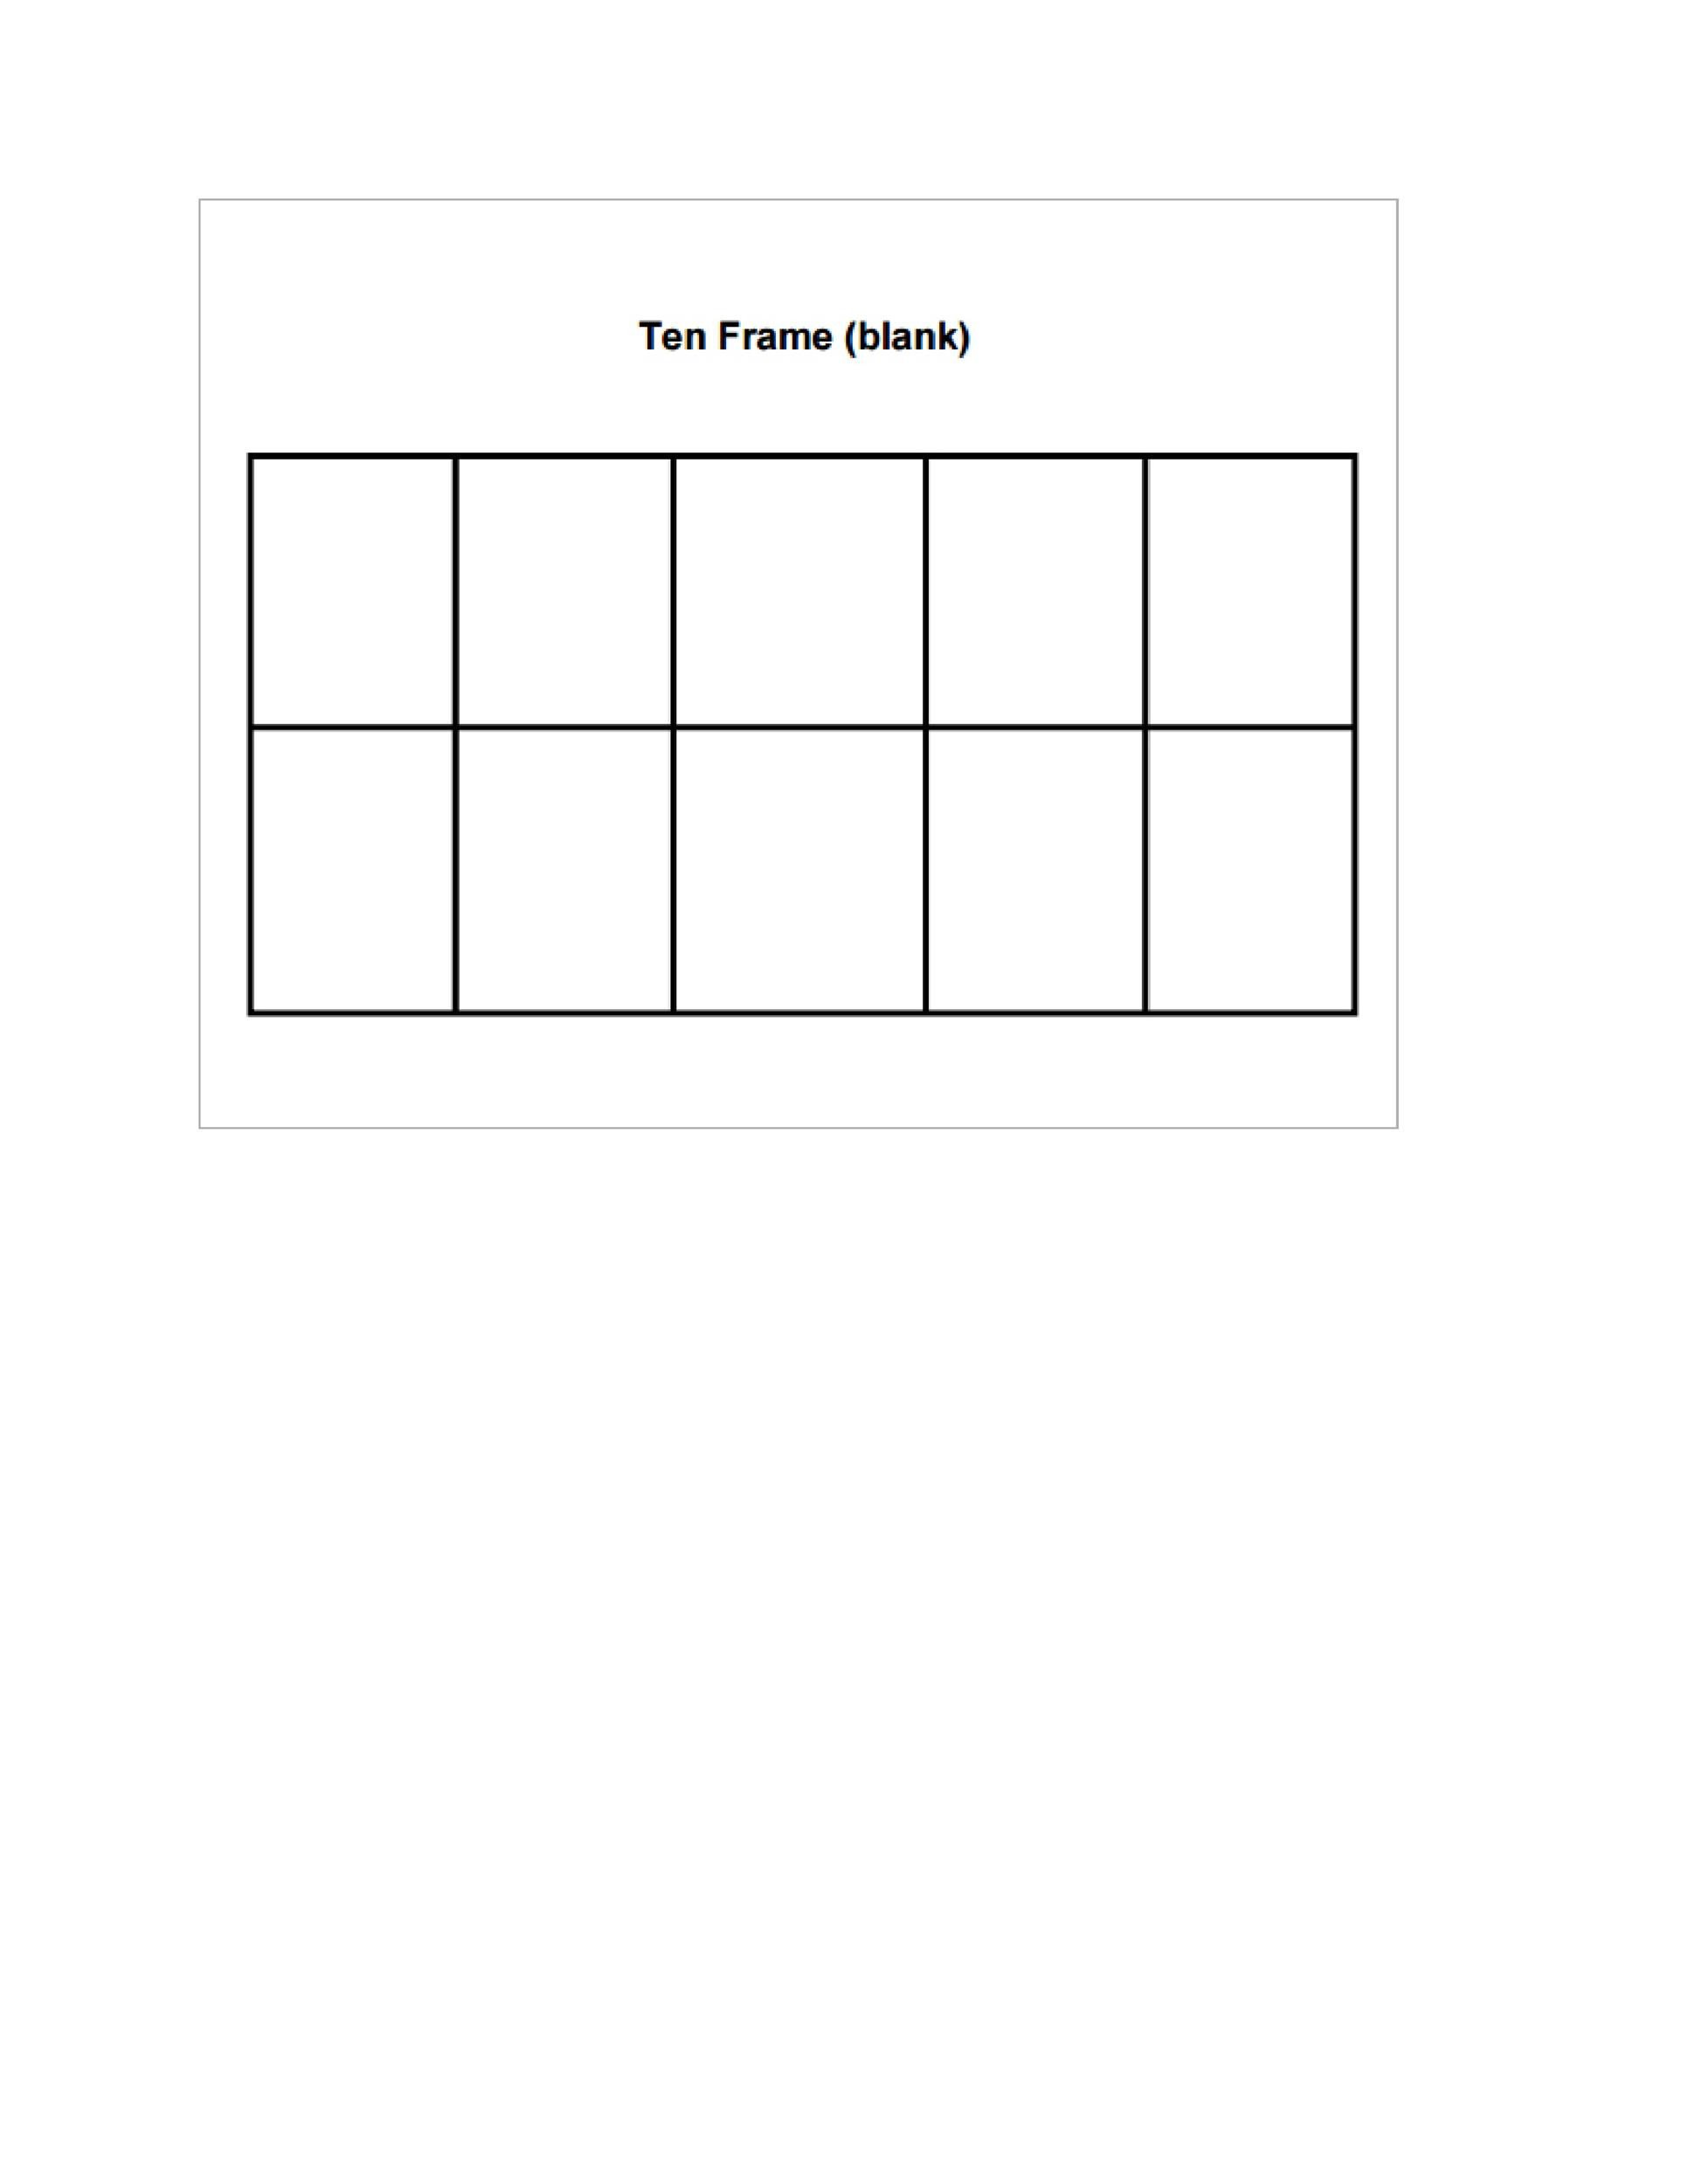 Blank Ten Frame Worksheets 36 Printable Ten Frame Templates Free Templatelab